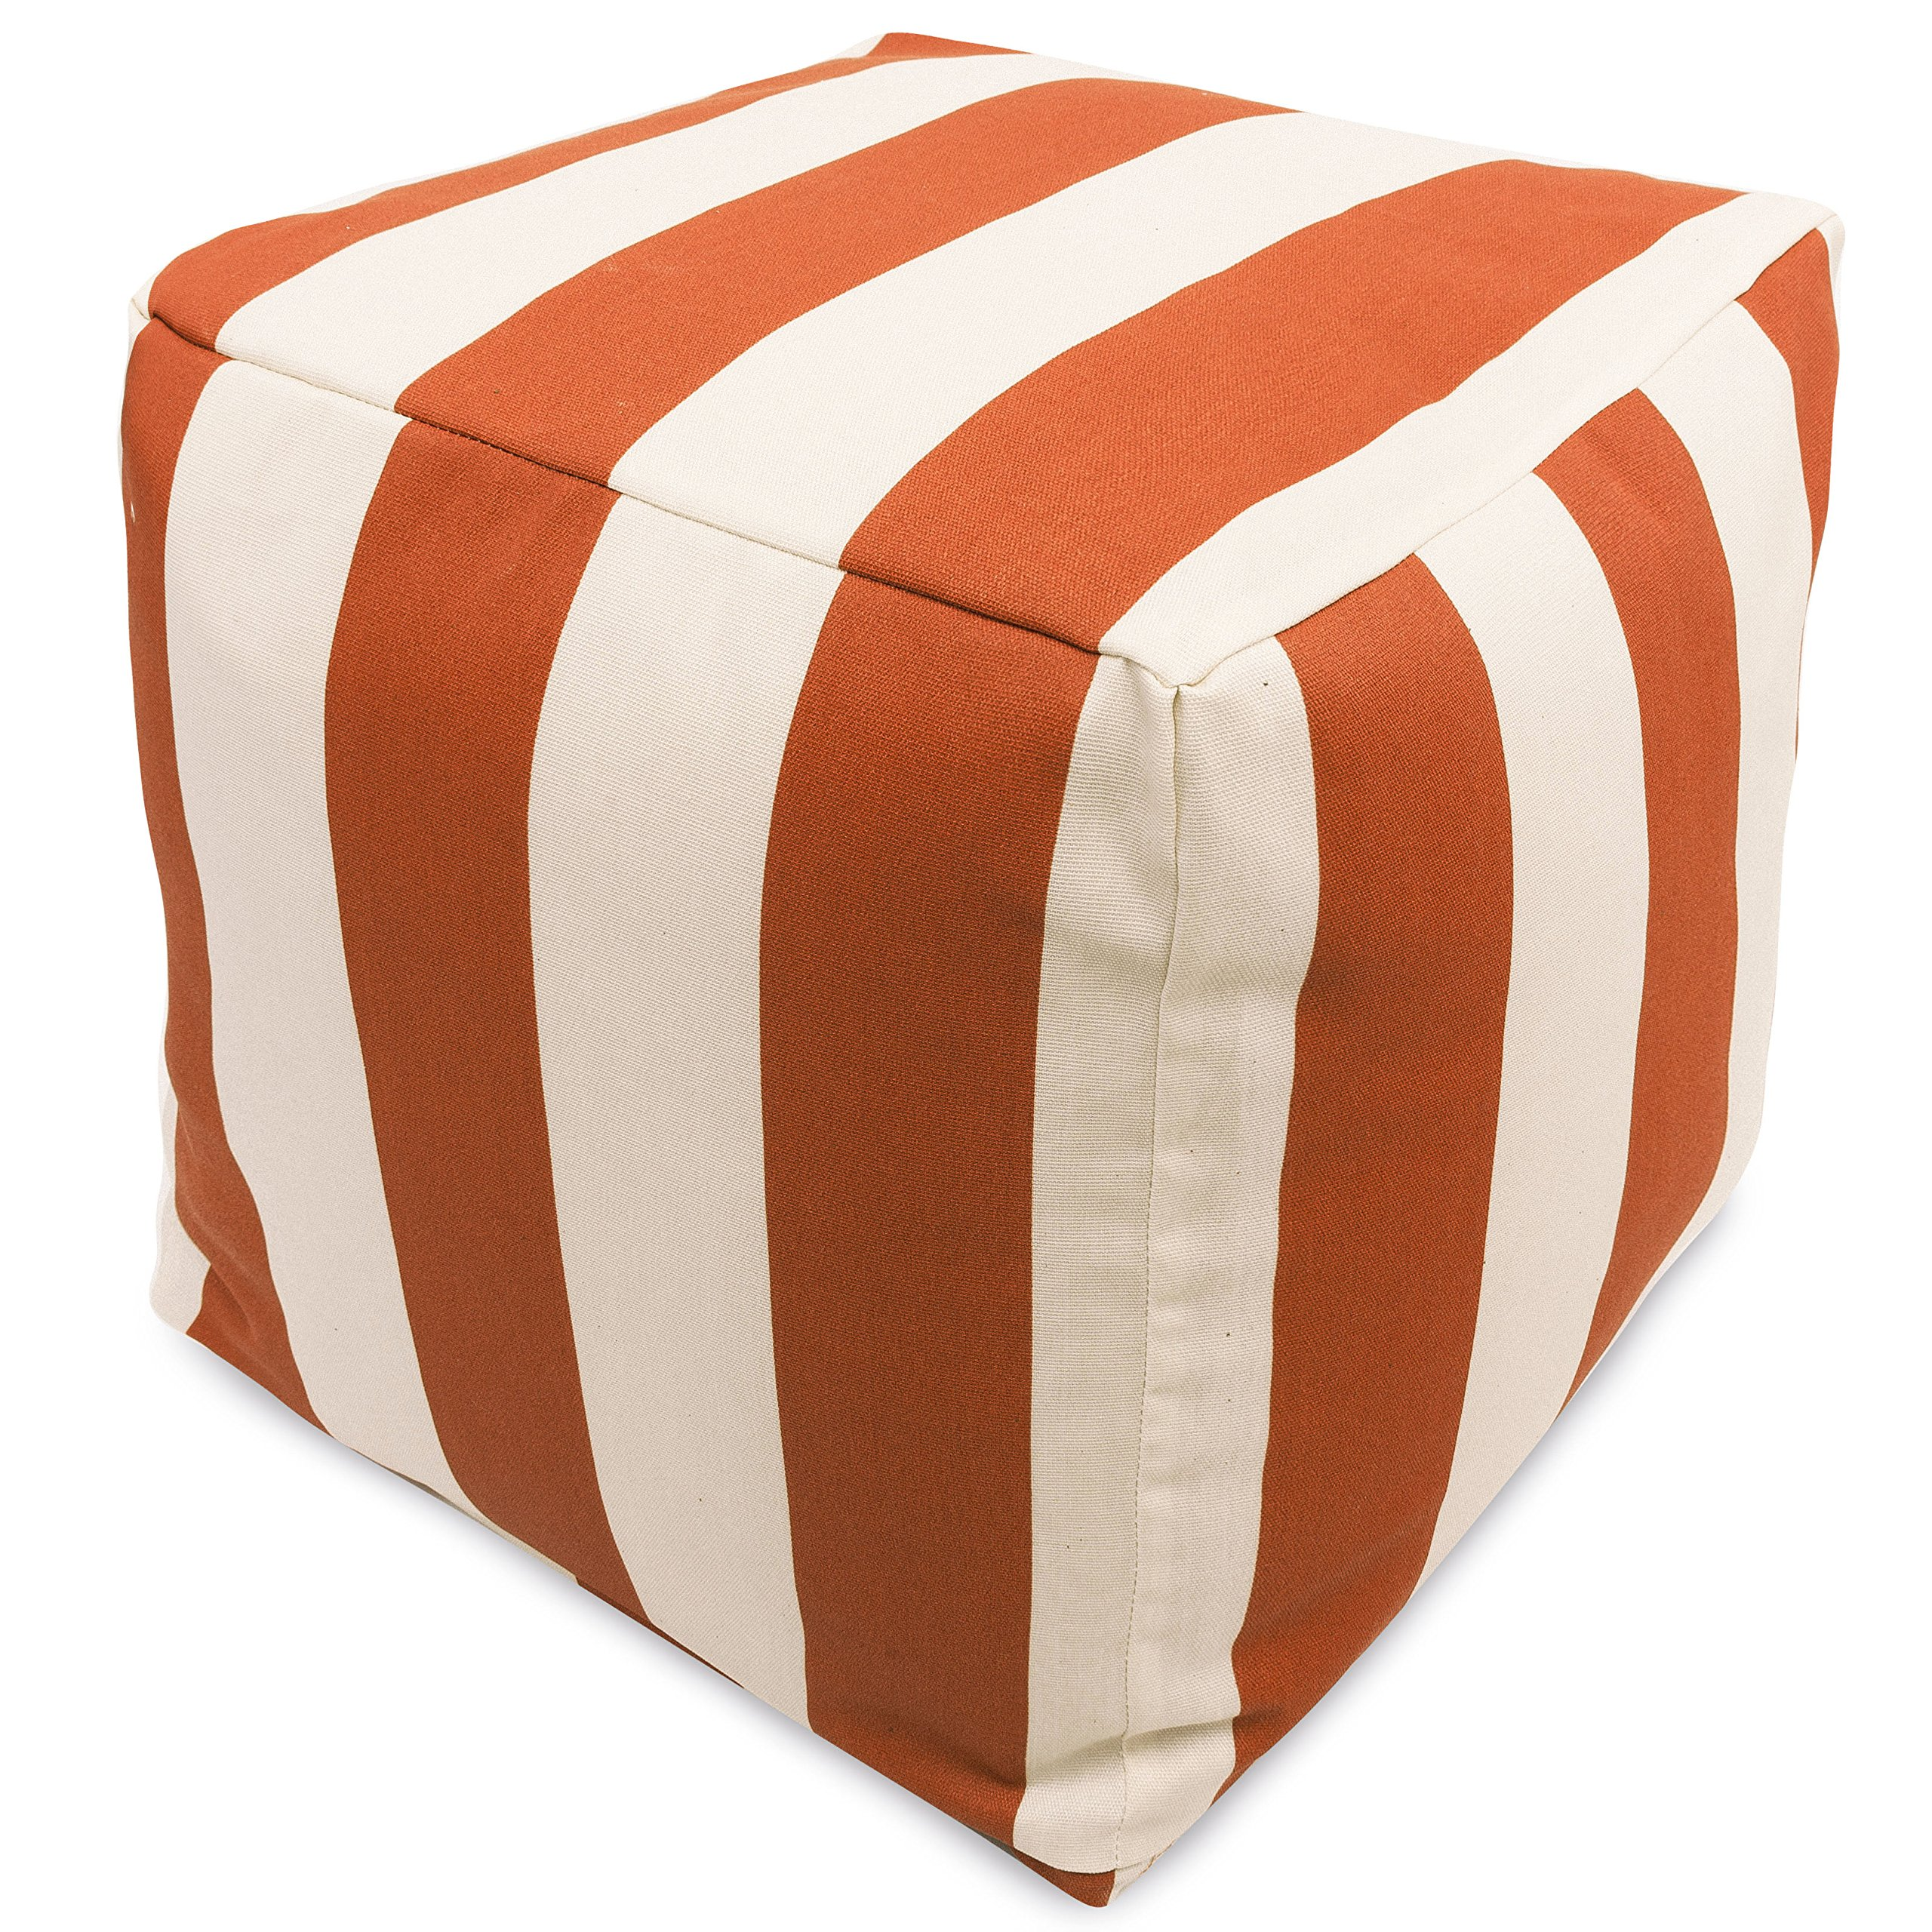 Majestic Home Goods Burnt Orange Vertical Stripe Indoor/Outdoor Bean Bag Ottoman Pouf Cube 17'' L x 17'' W x 17'' H